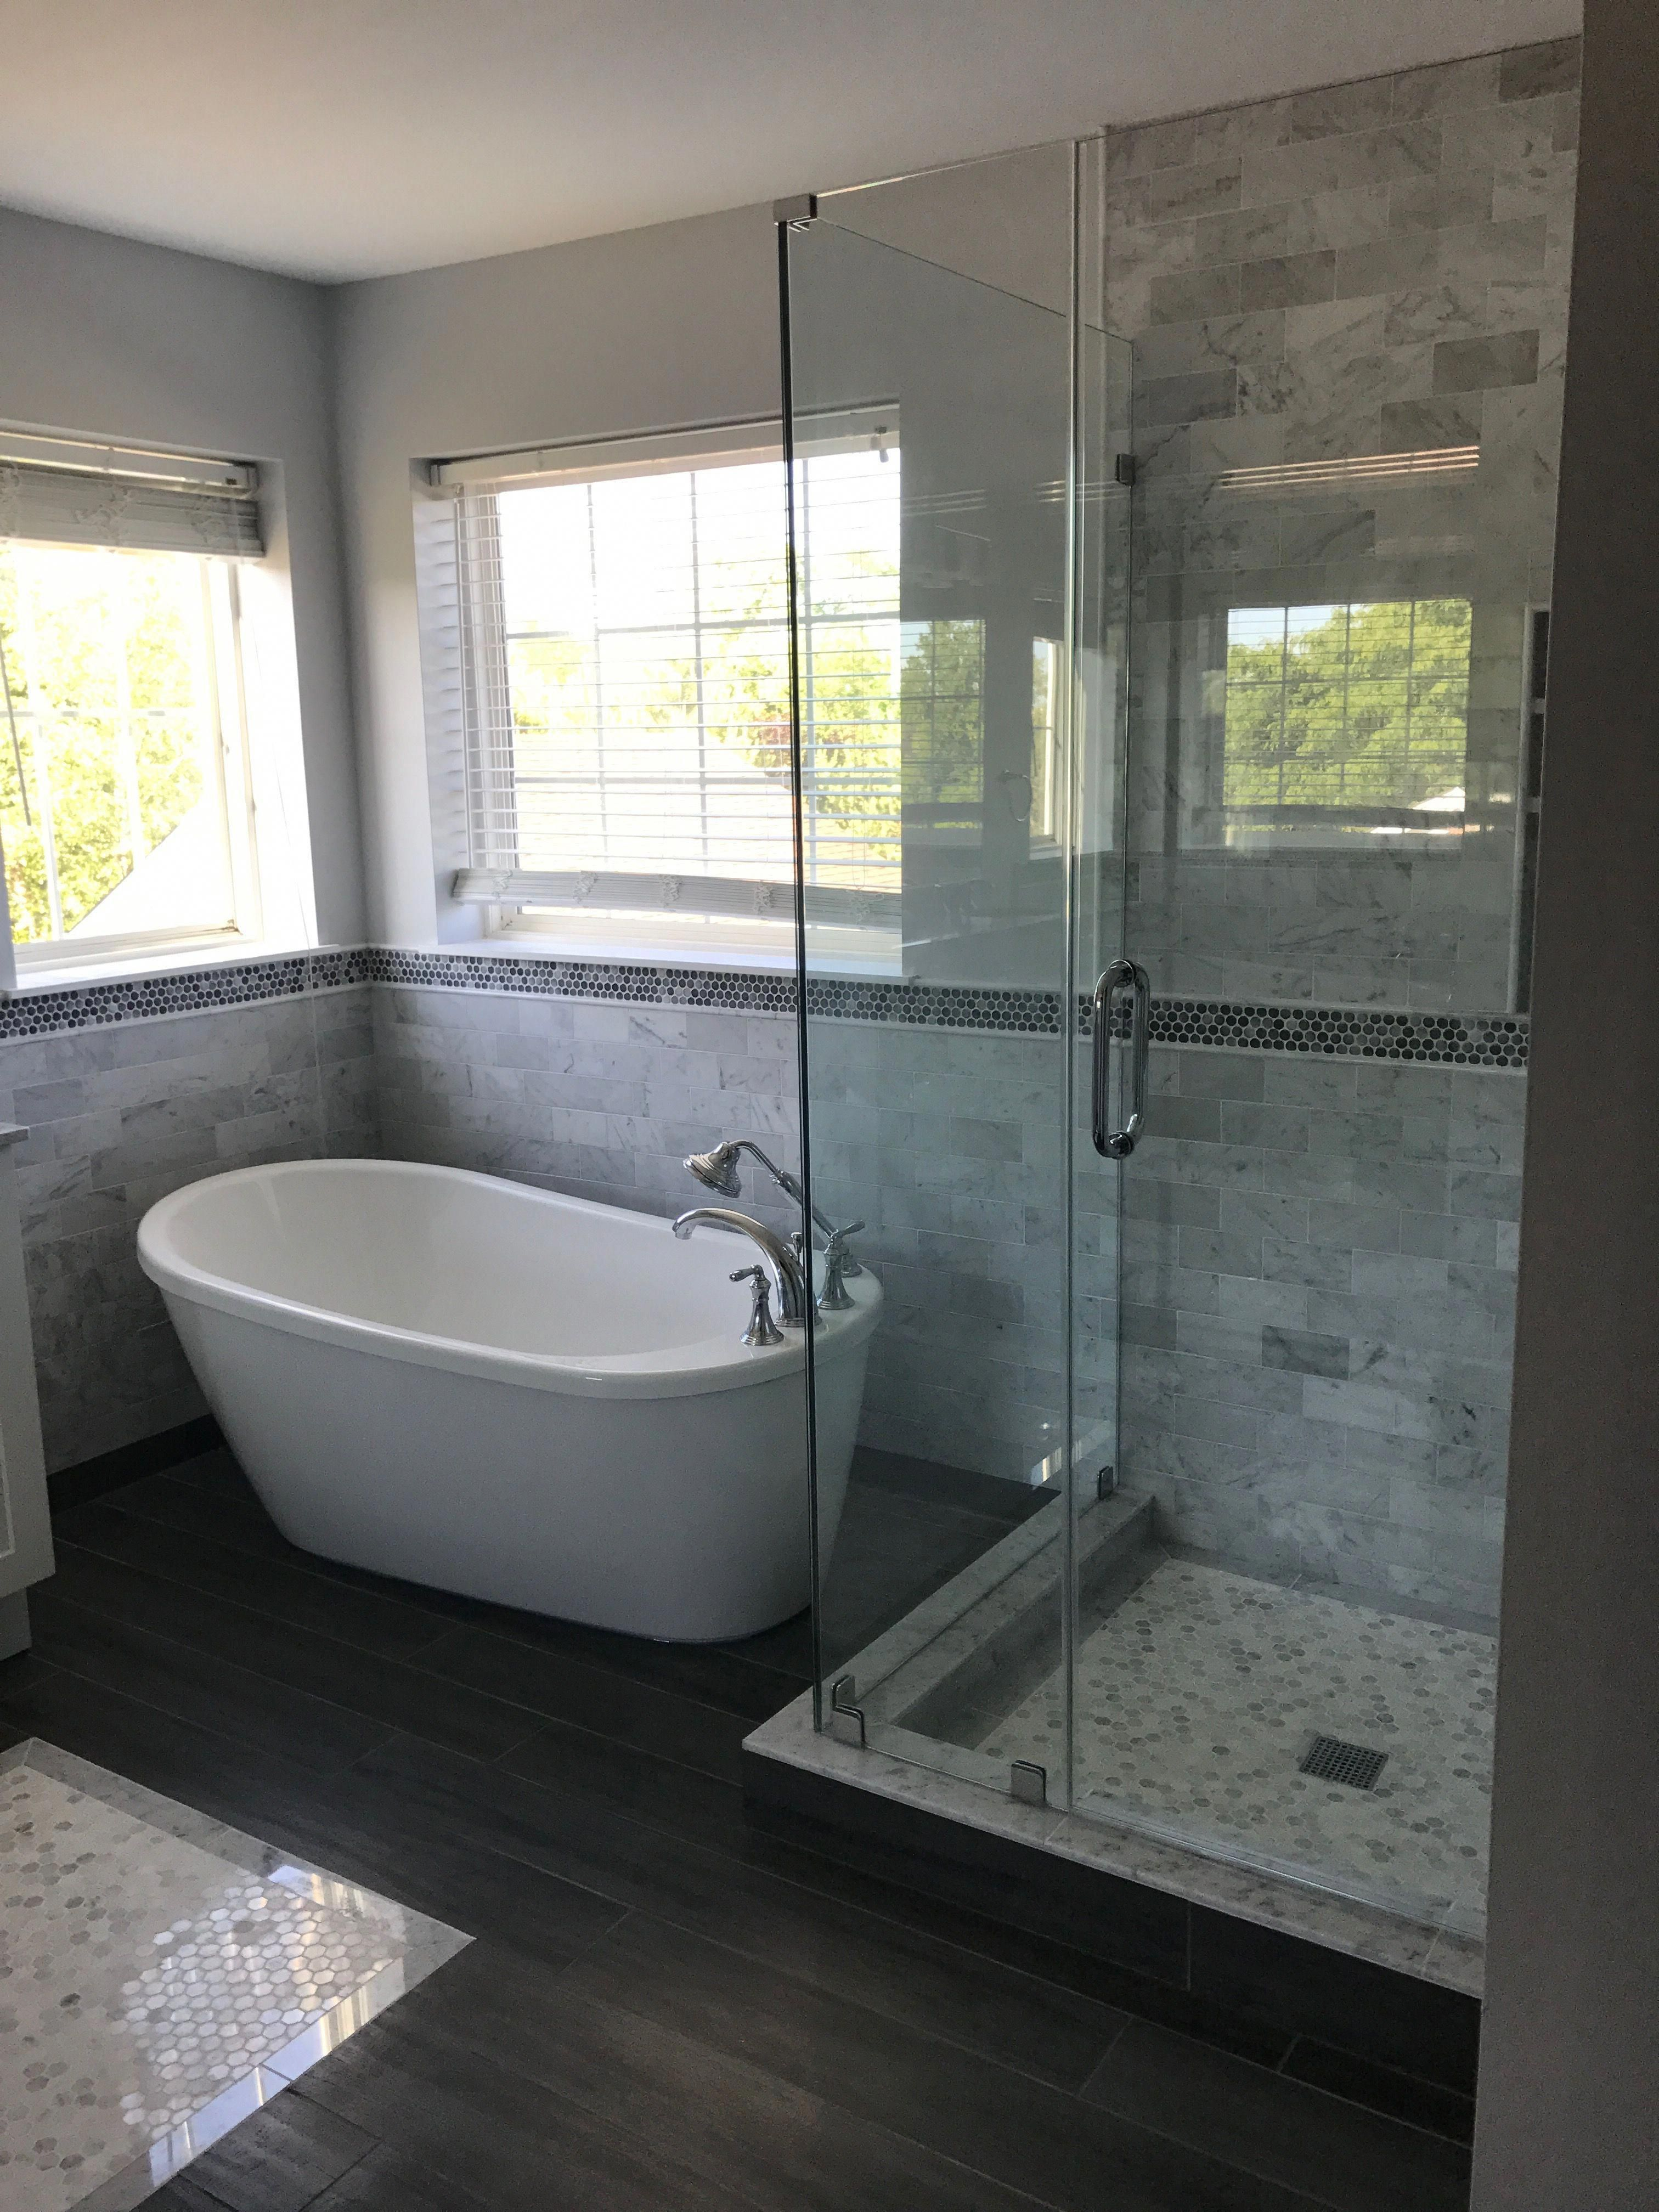 I RECOMMEND EXTRA INFO ON BATHROOM REMODEL SHOWER IN 2019